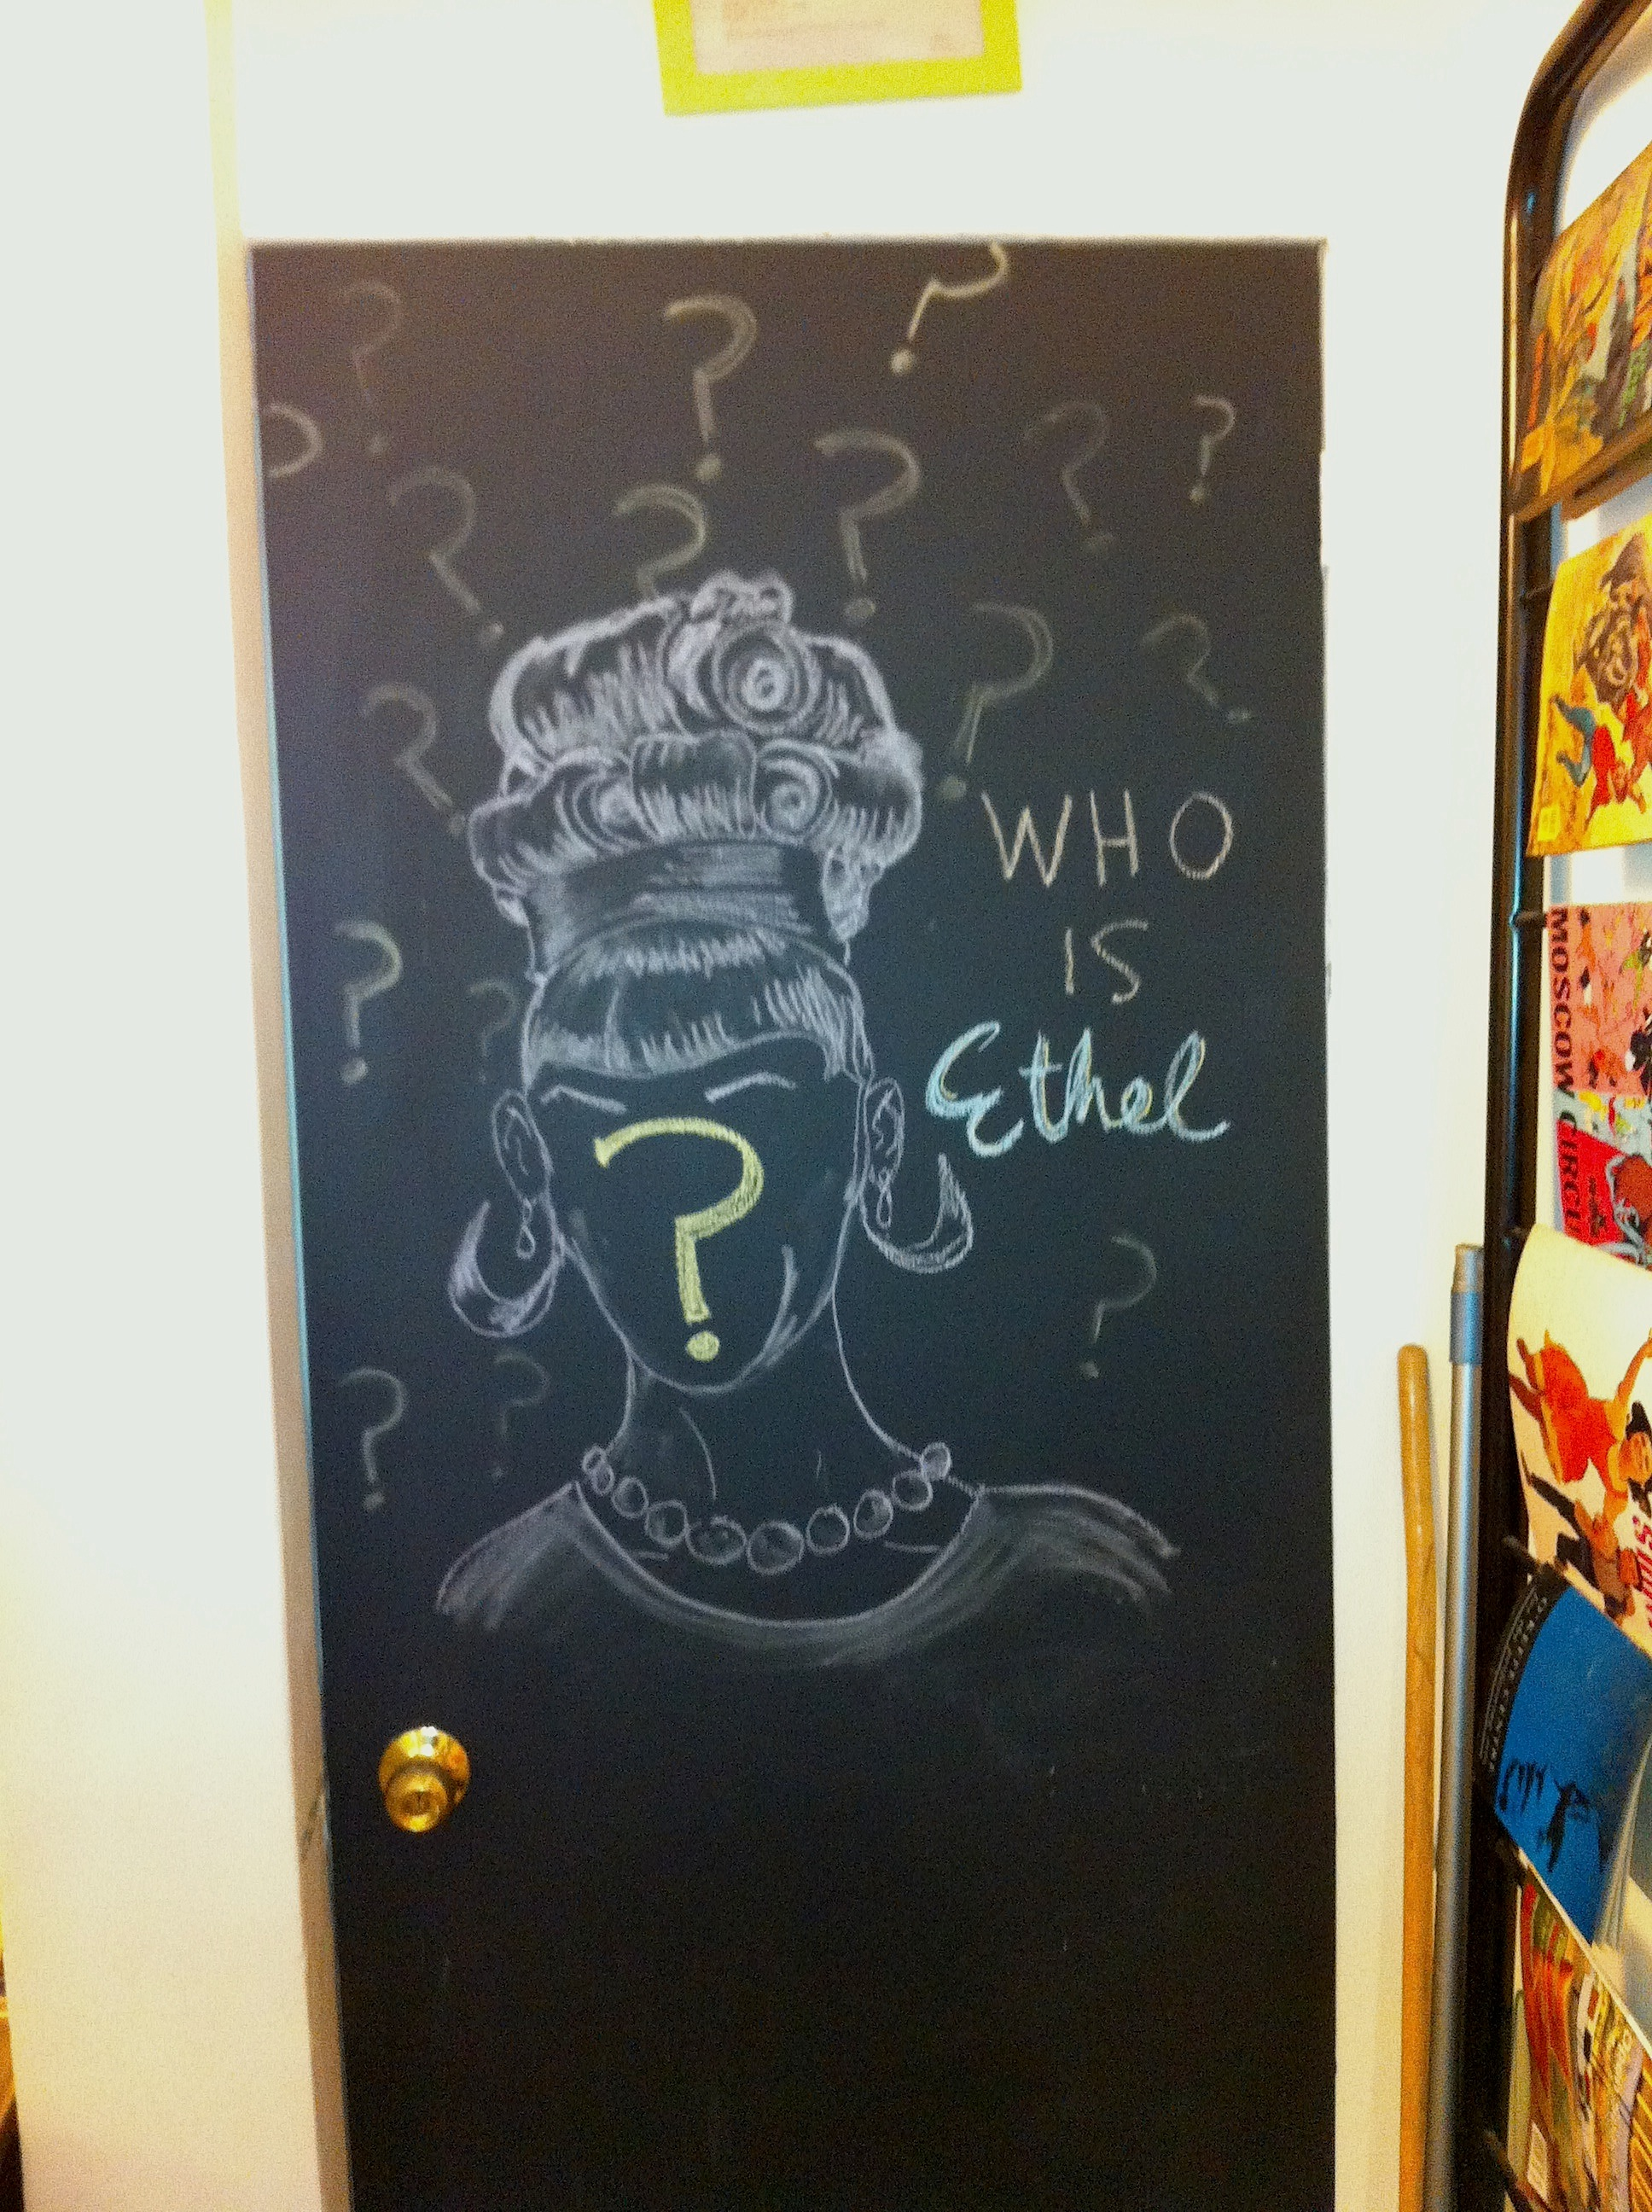 who is ethel?.jpg